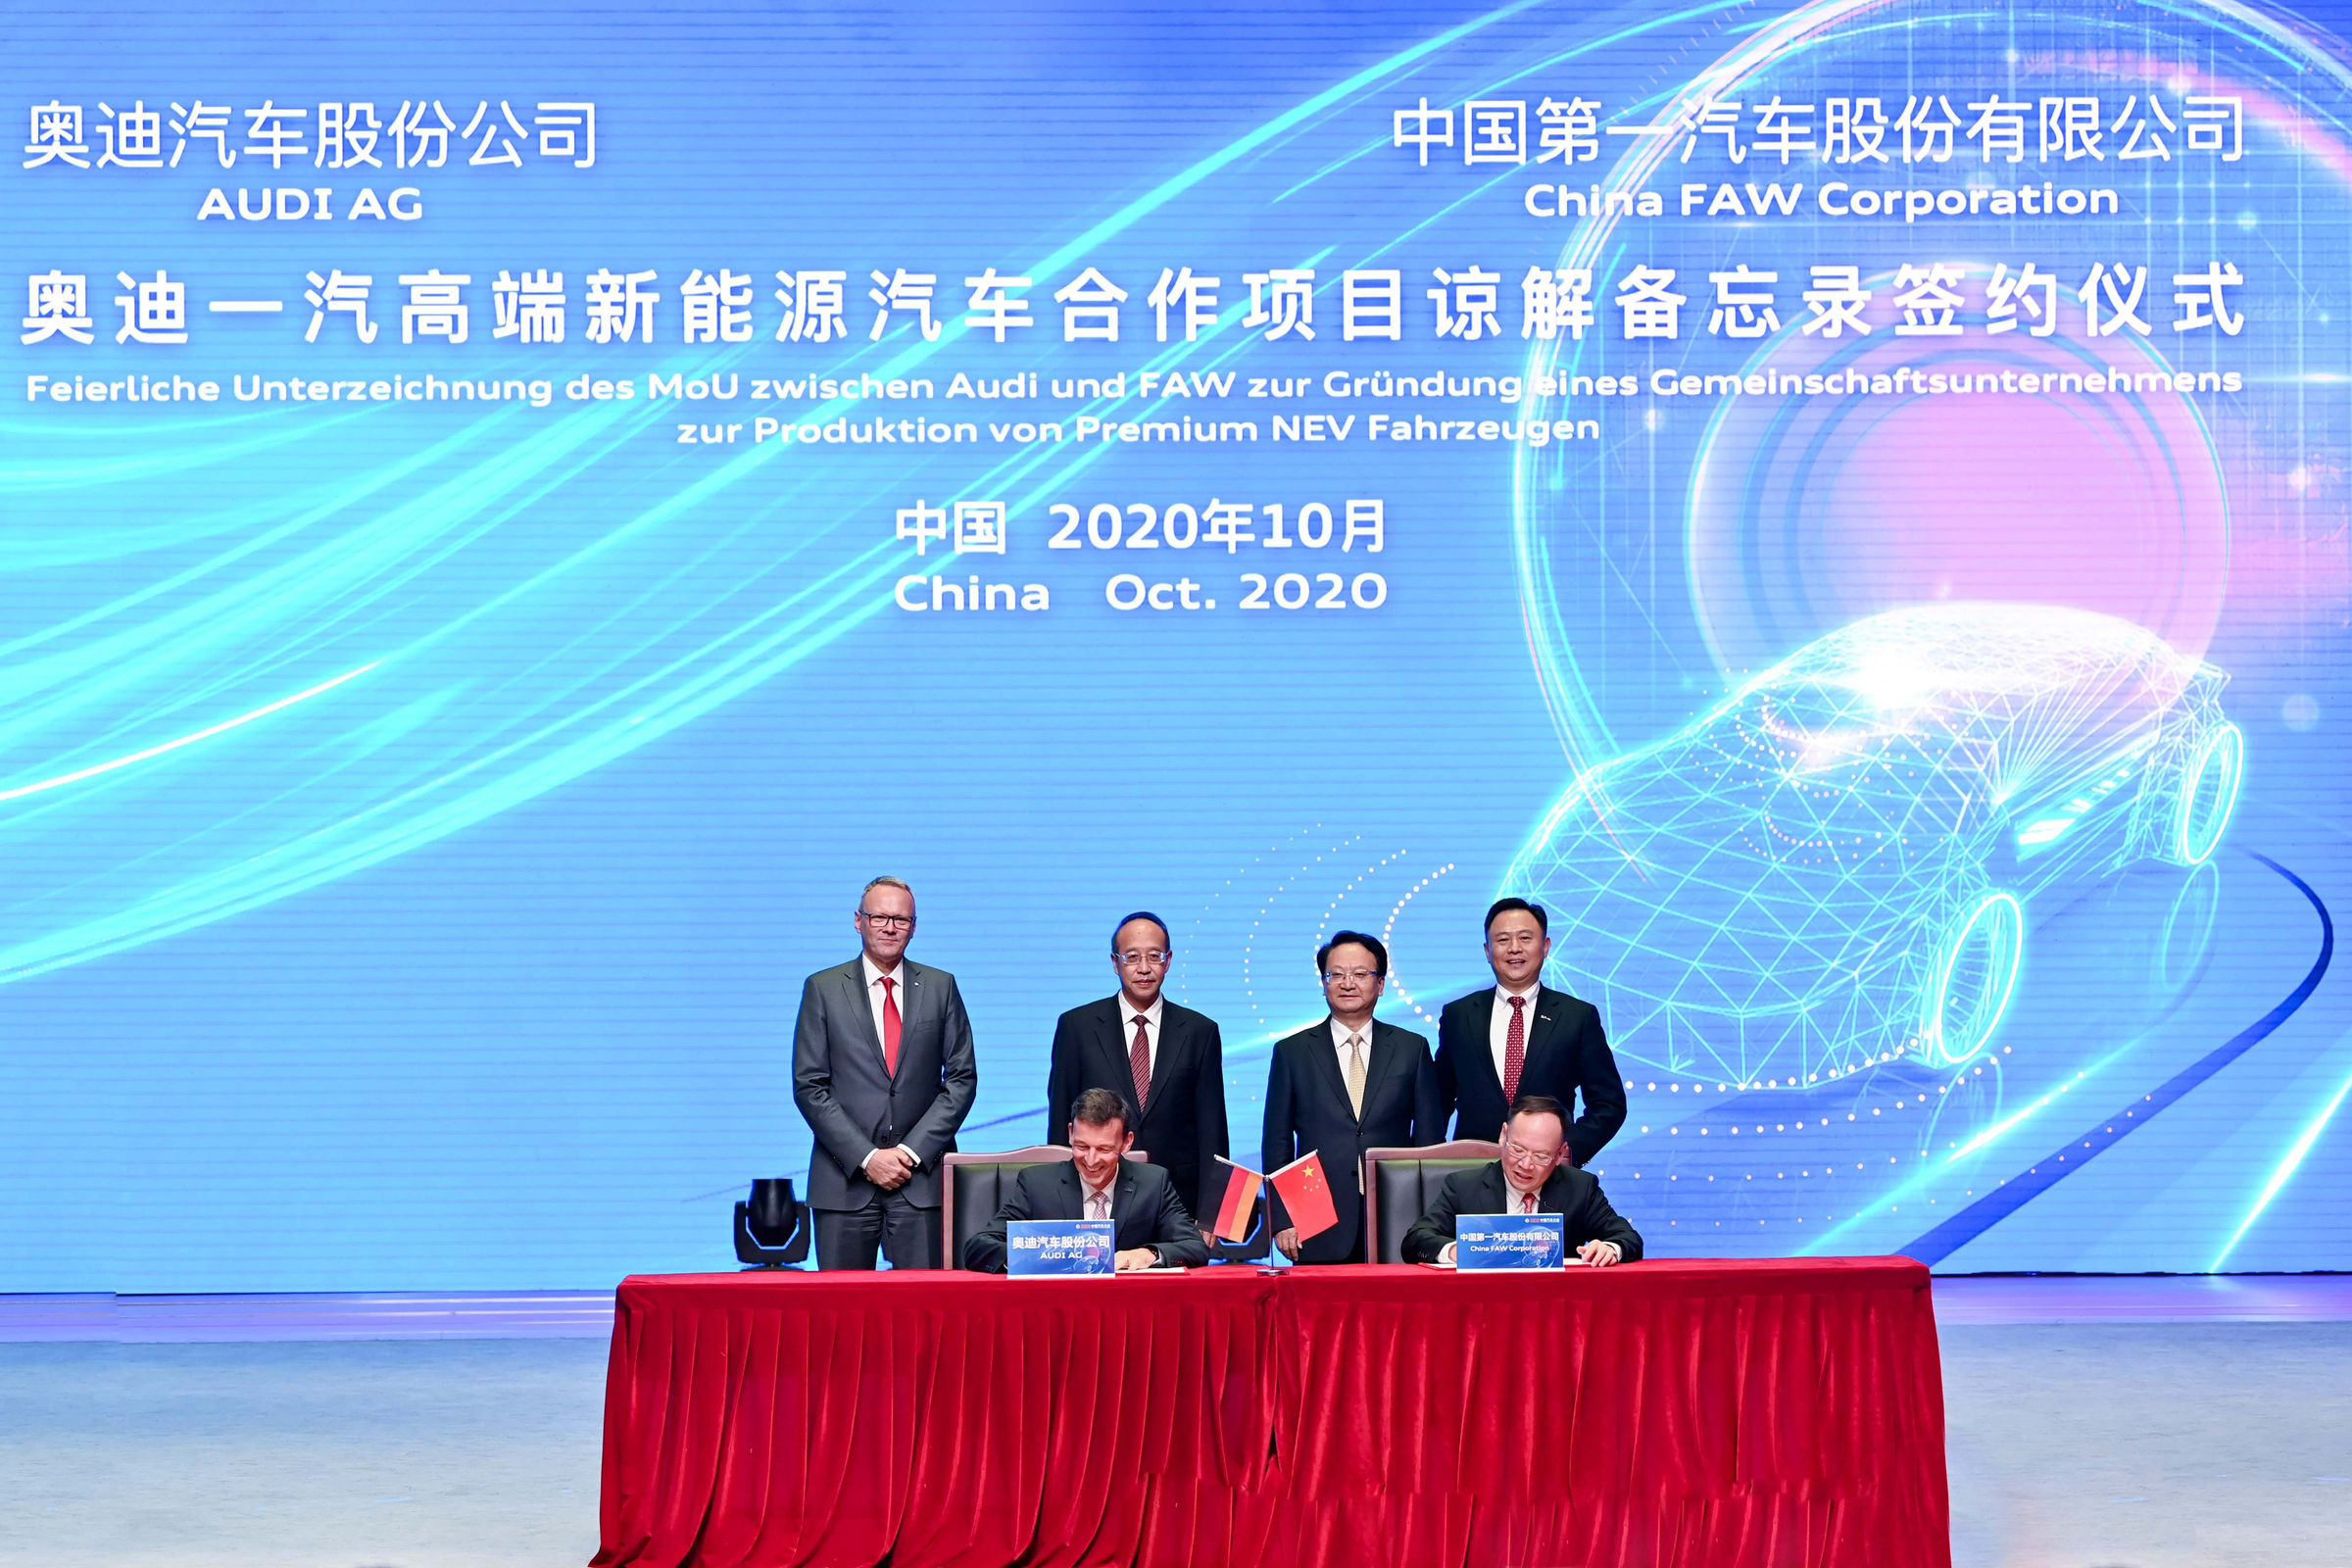 Audi and FAW establish new company to produce electric vehicles in China - Image 5